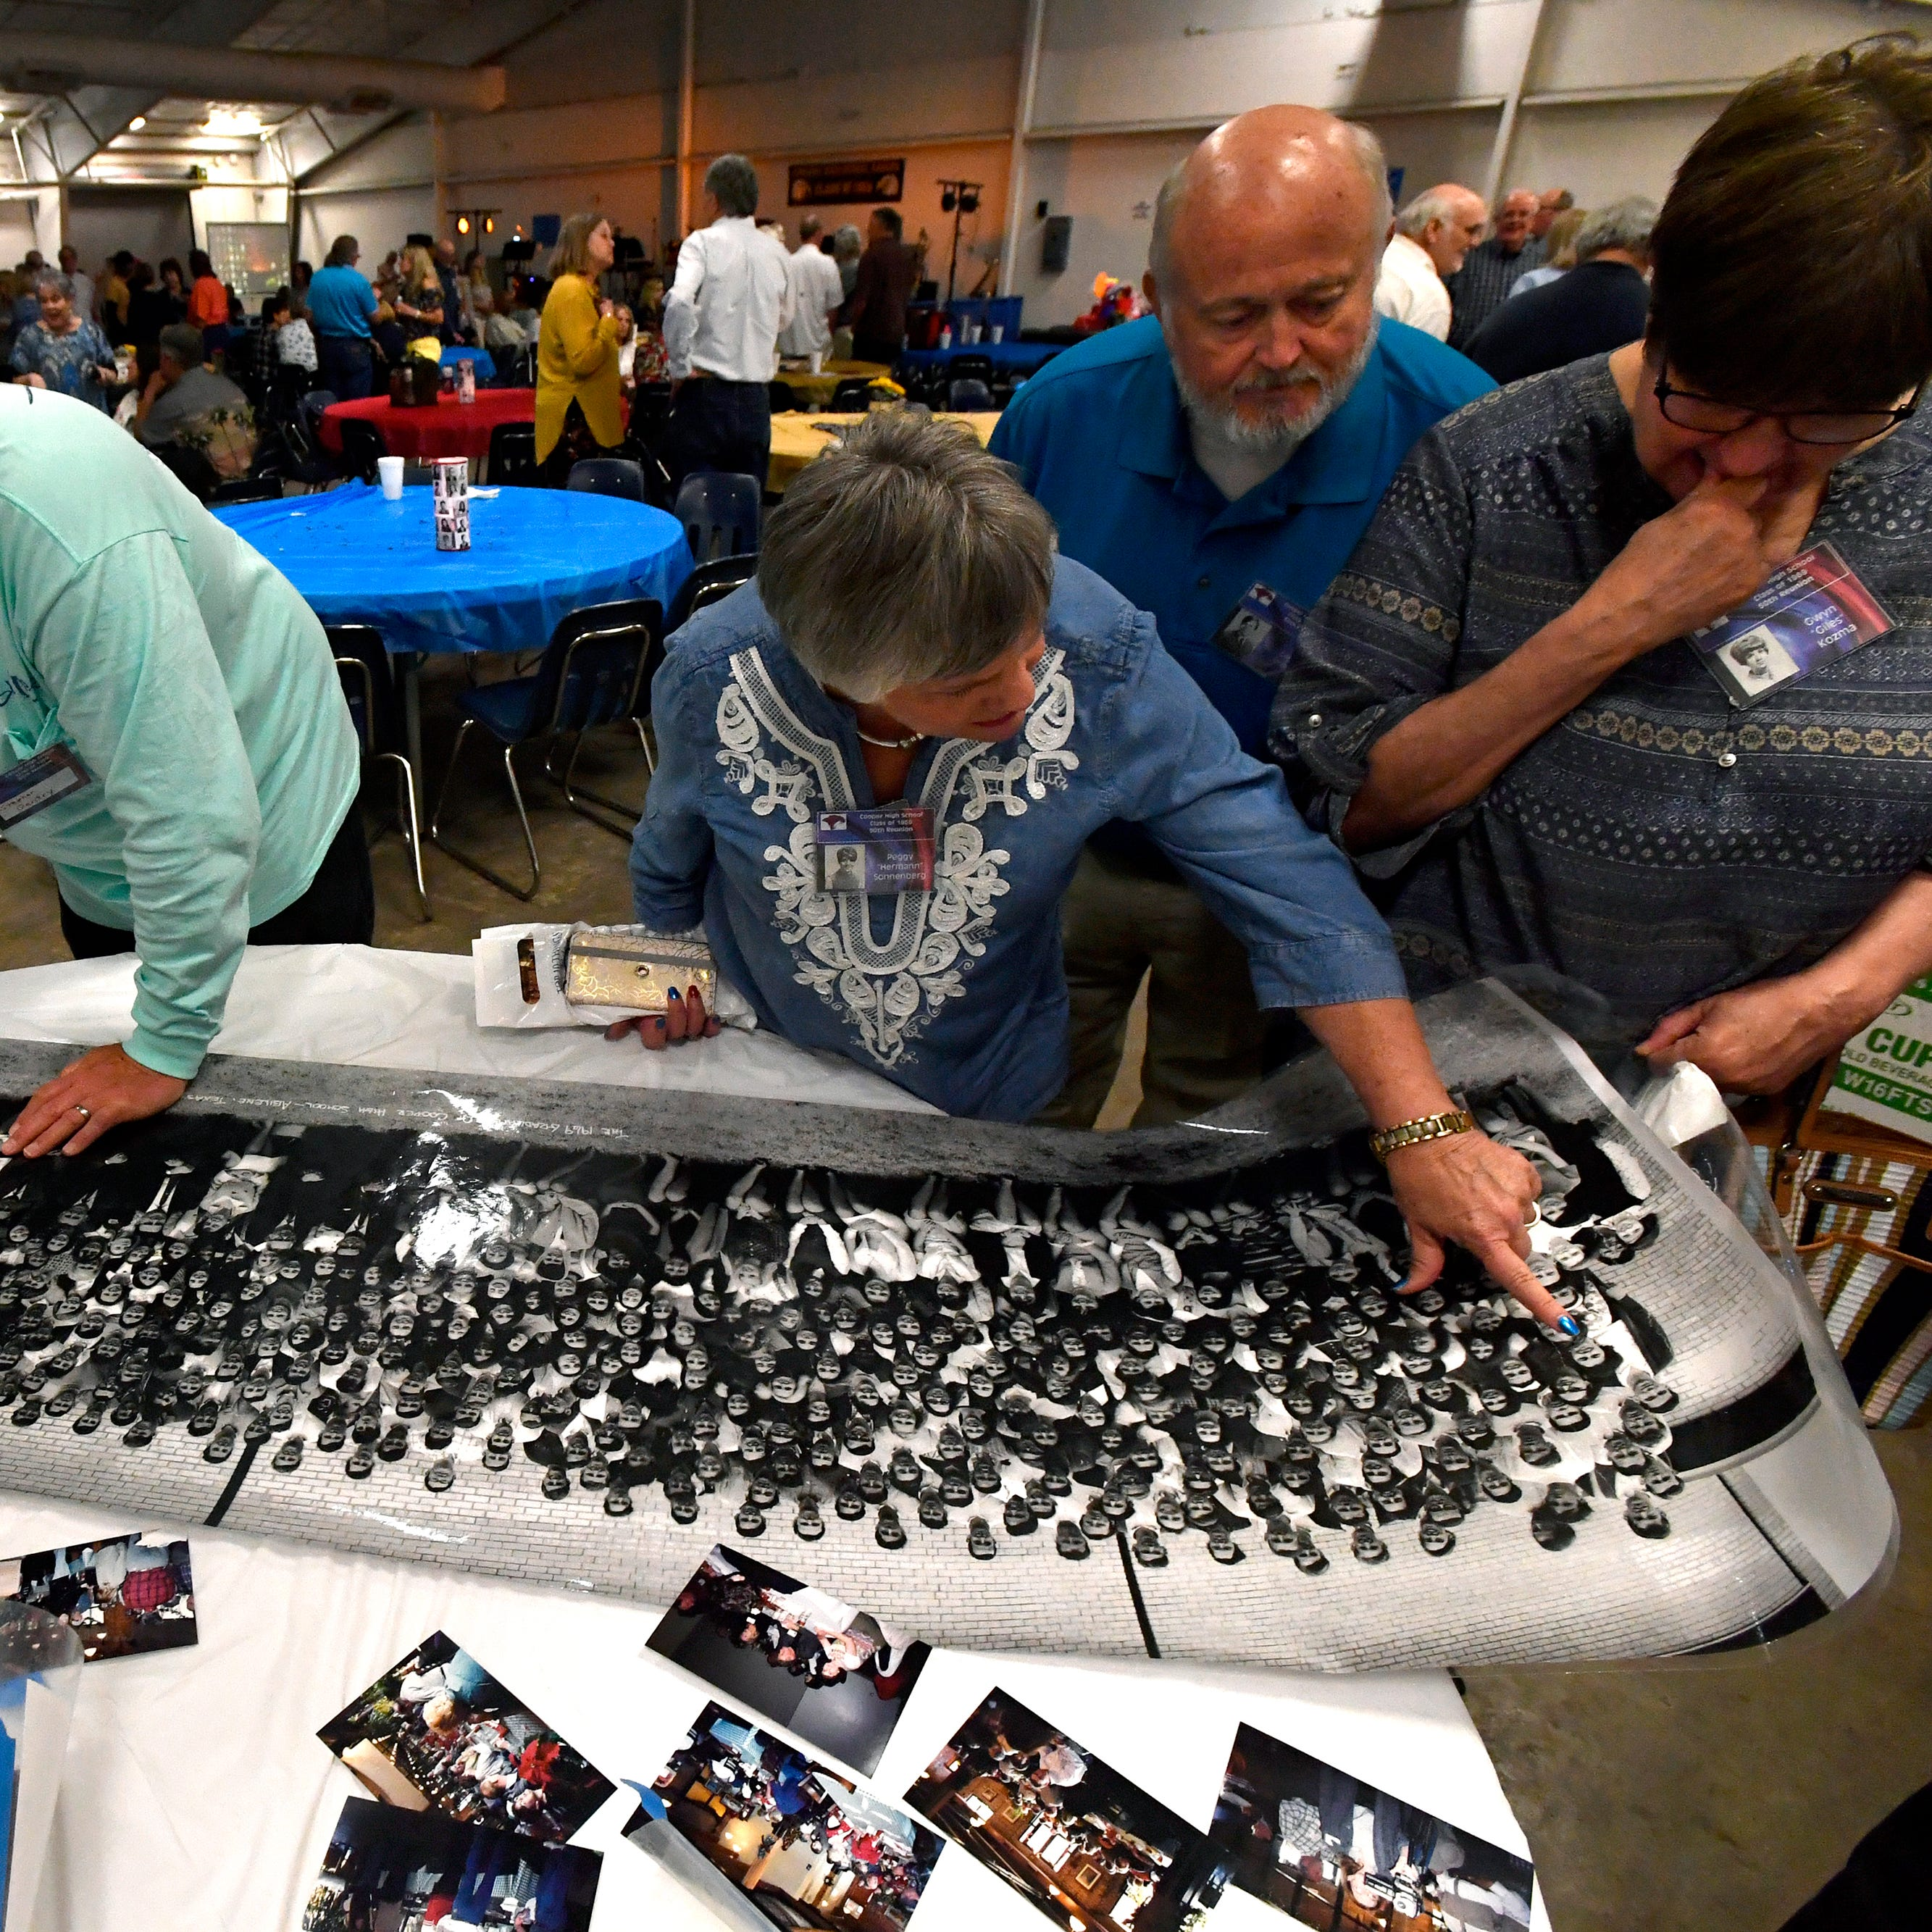 Rival Cougars, Eagles flock together for 50th reunion